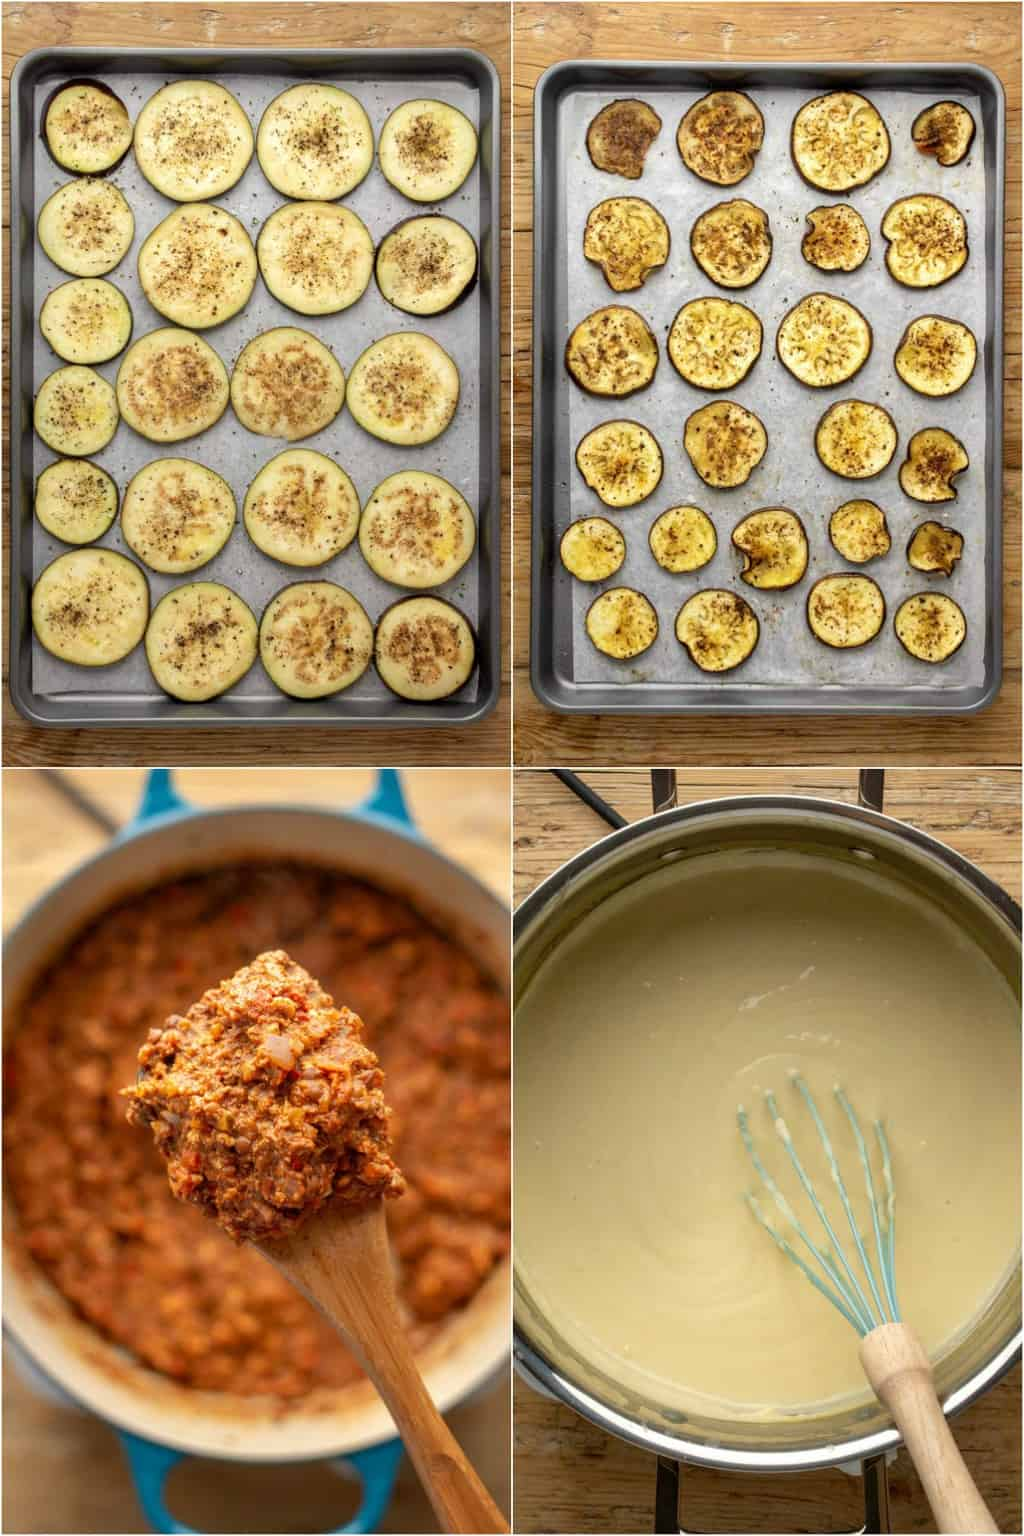 Step by step process photo collage of making vegan moussaka.